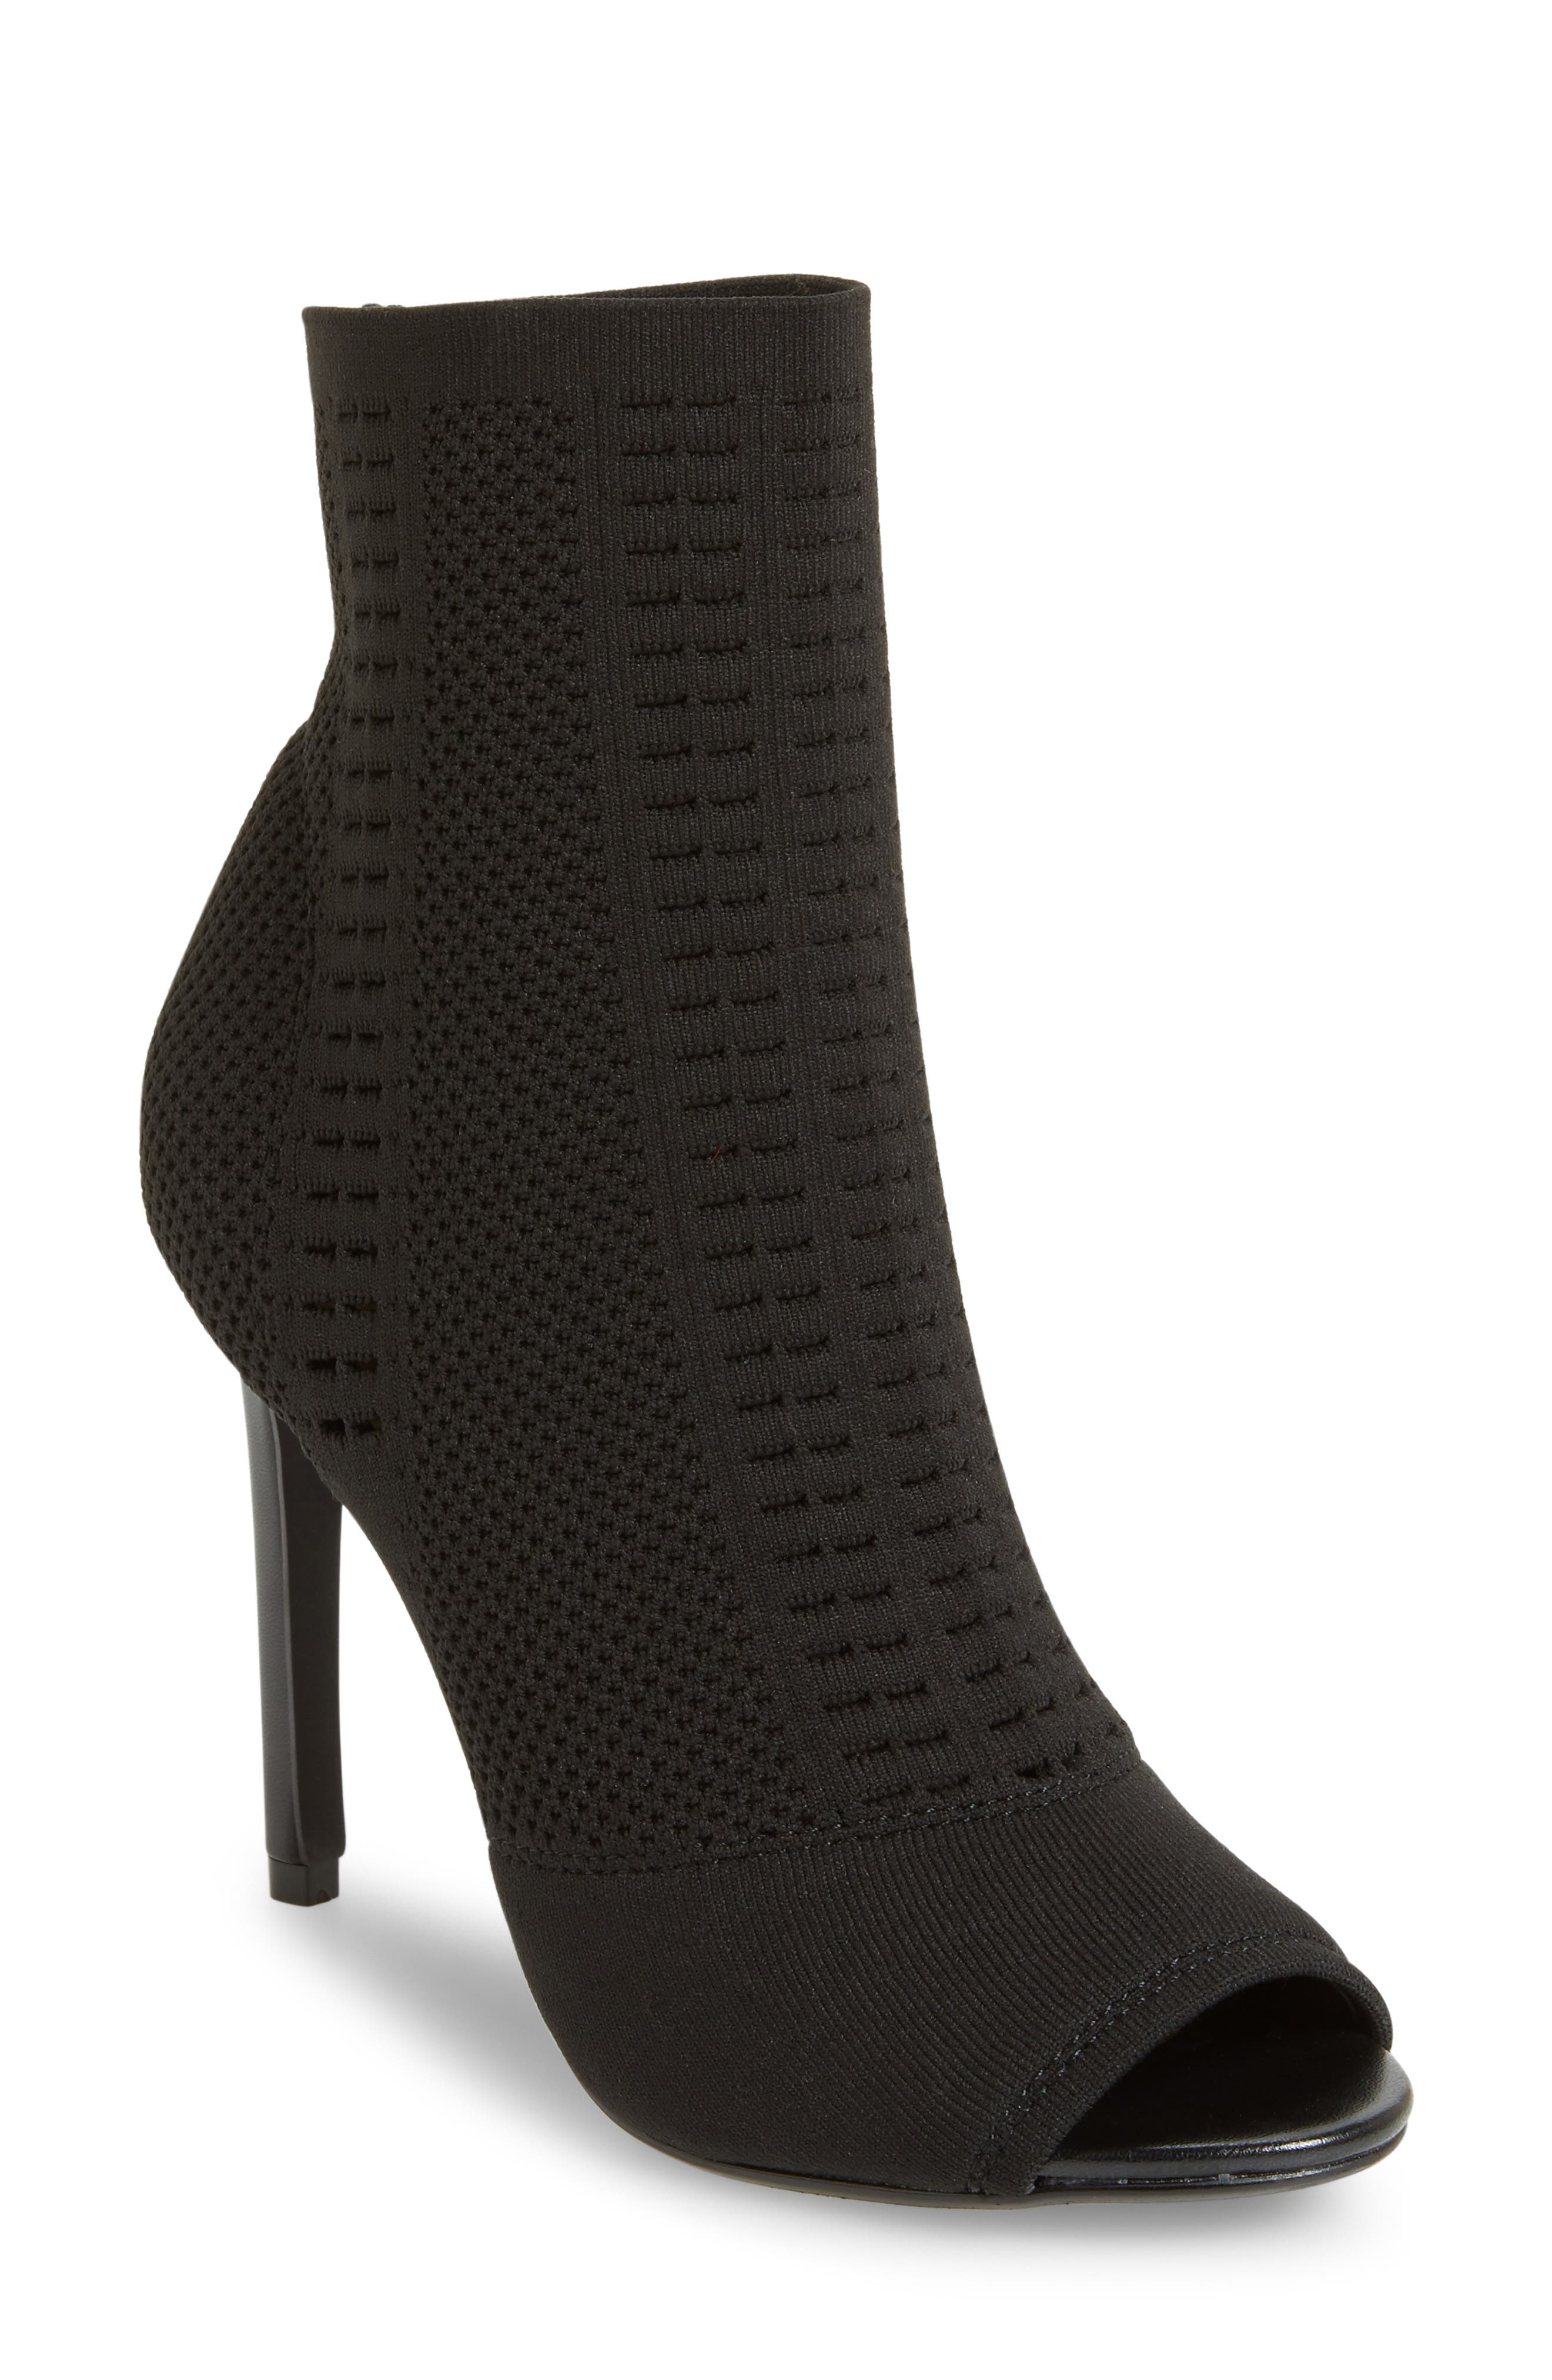 Candid Knit Bootie,                         Main,                         color, 009